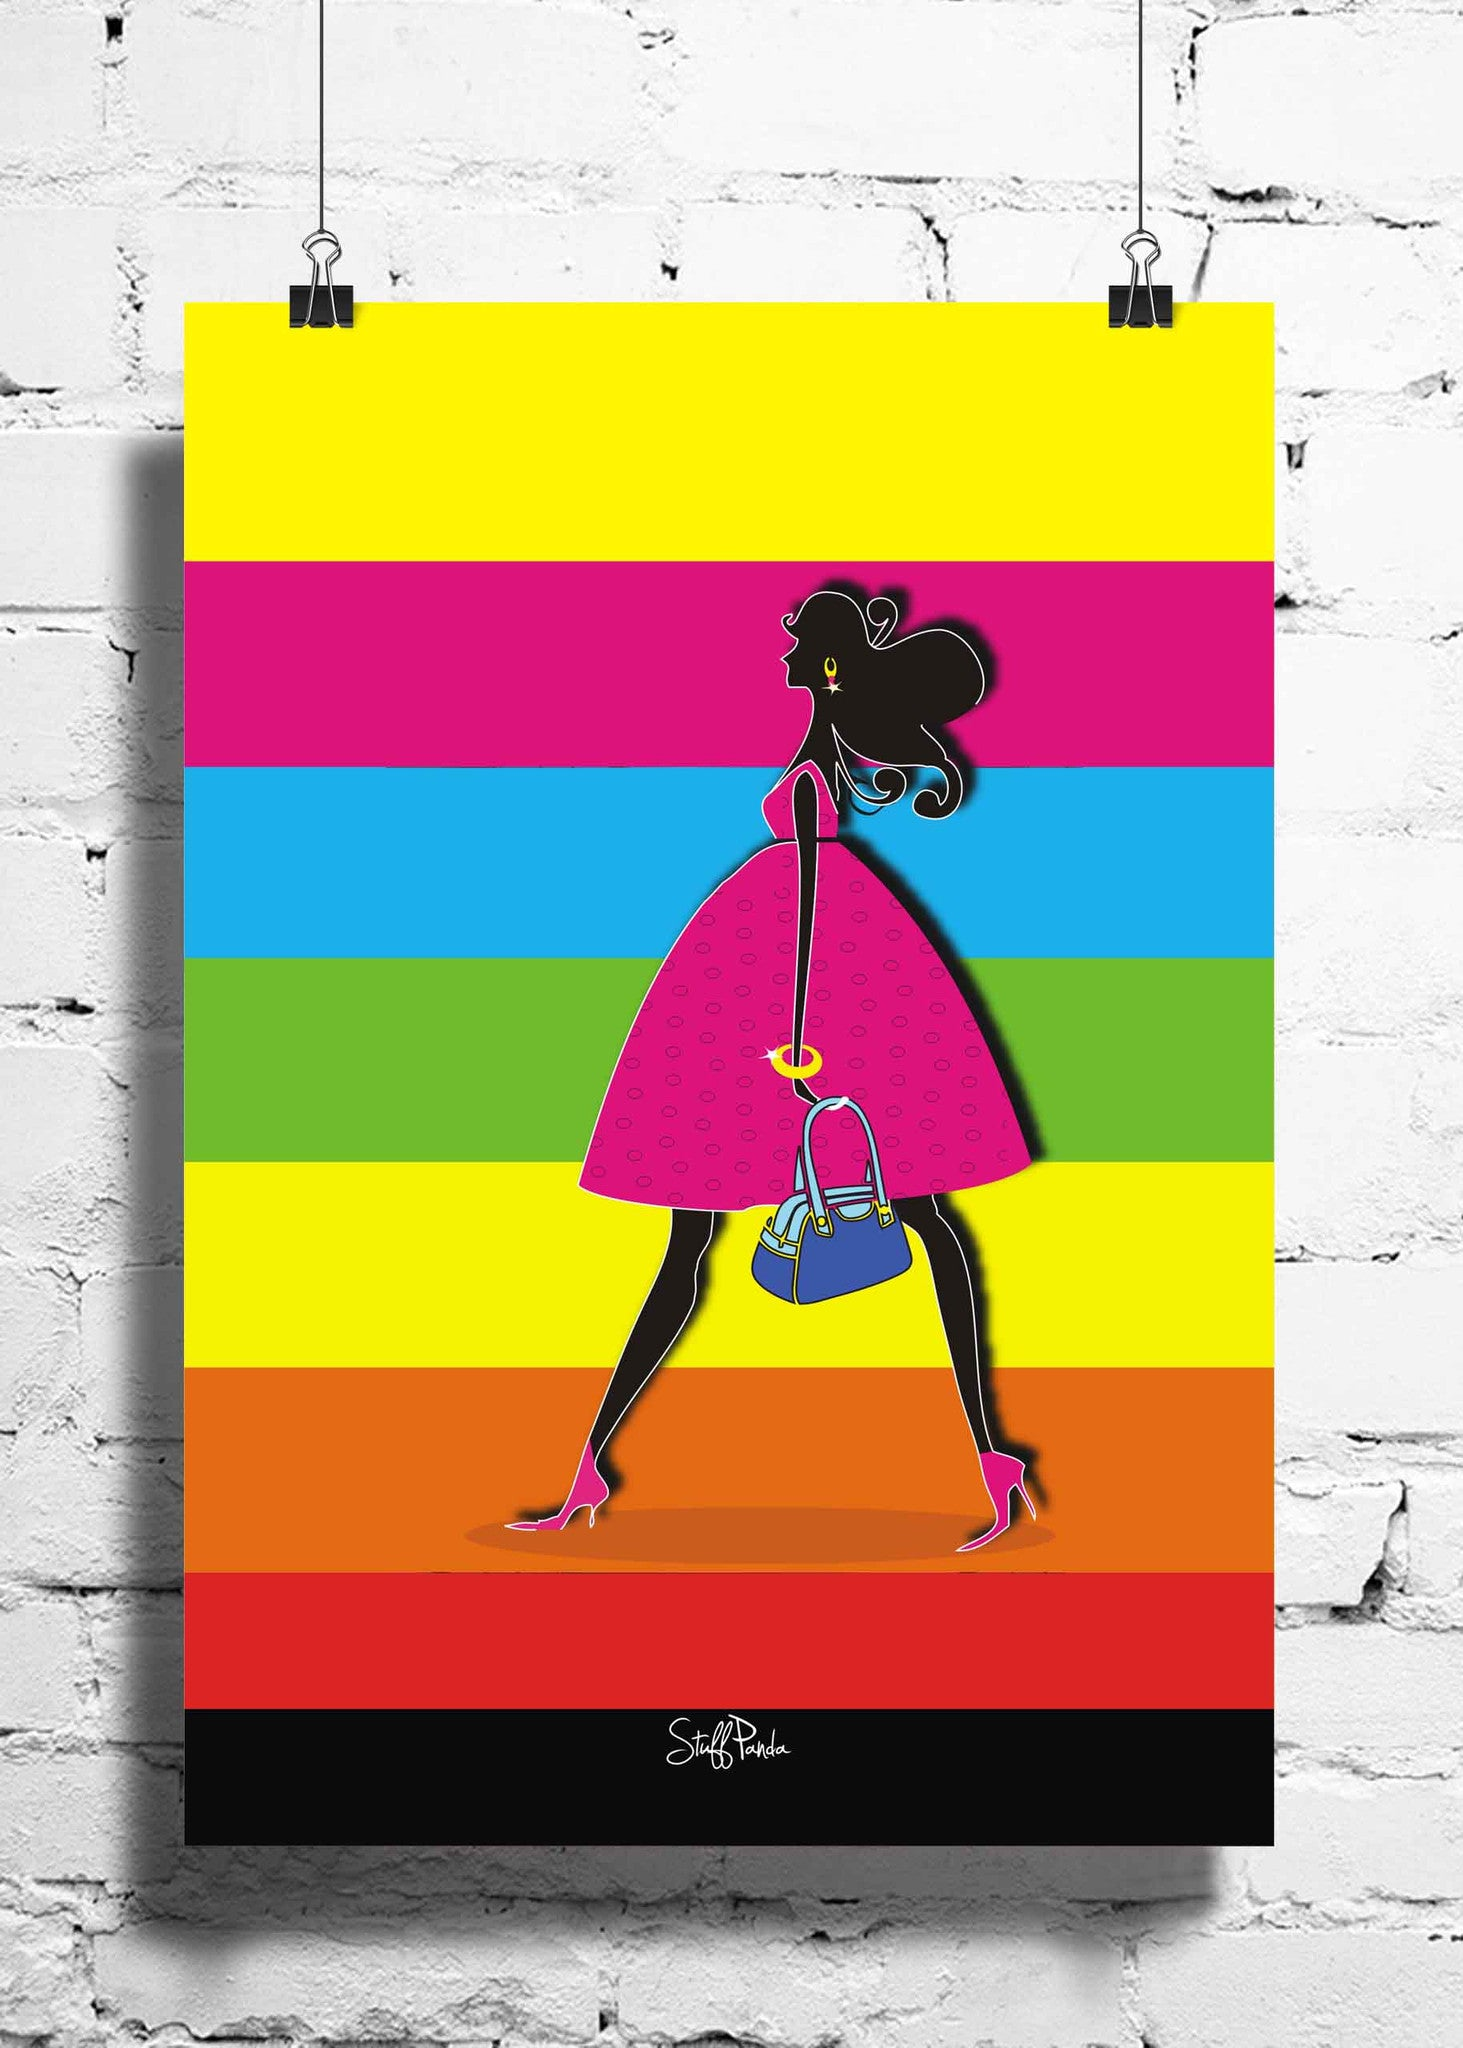 Cool Funky abstract Girl walking wall posters, art prints, stickers decals - stuffpanda - 1